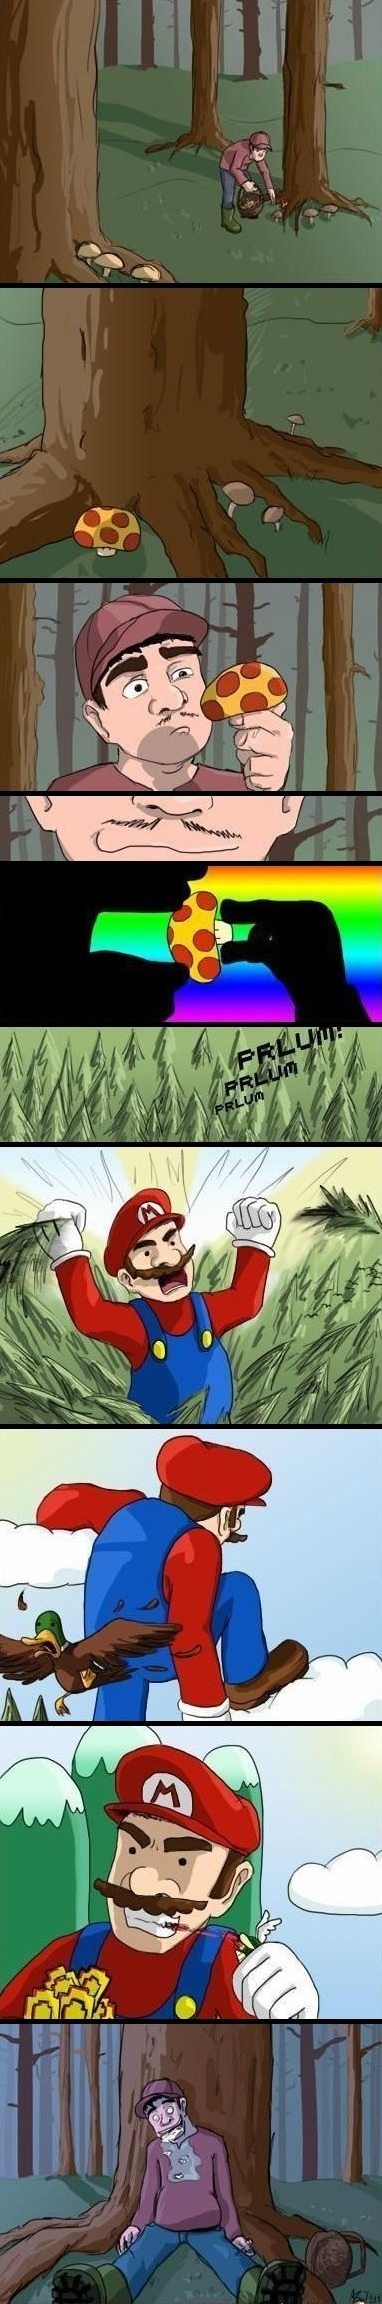 The truth behind Mario